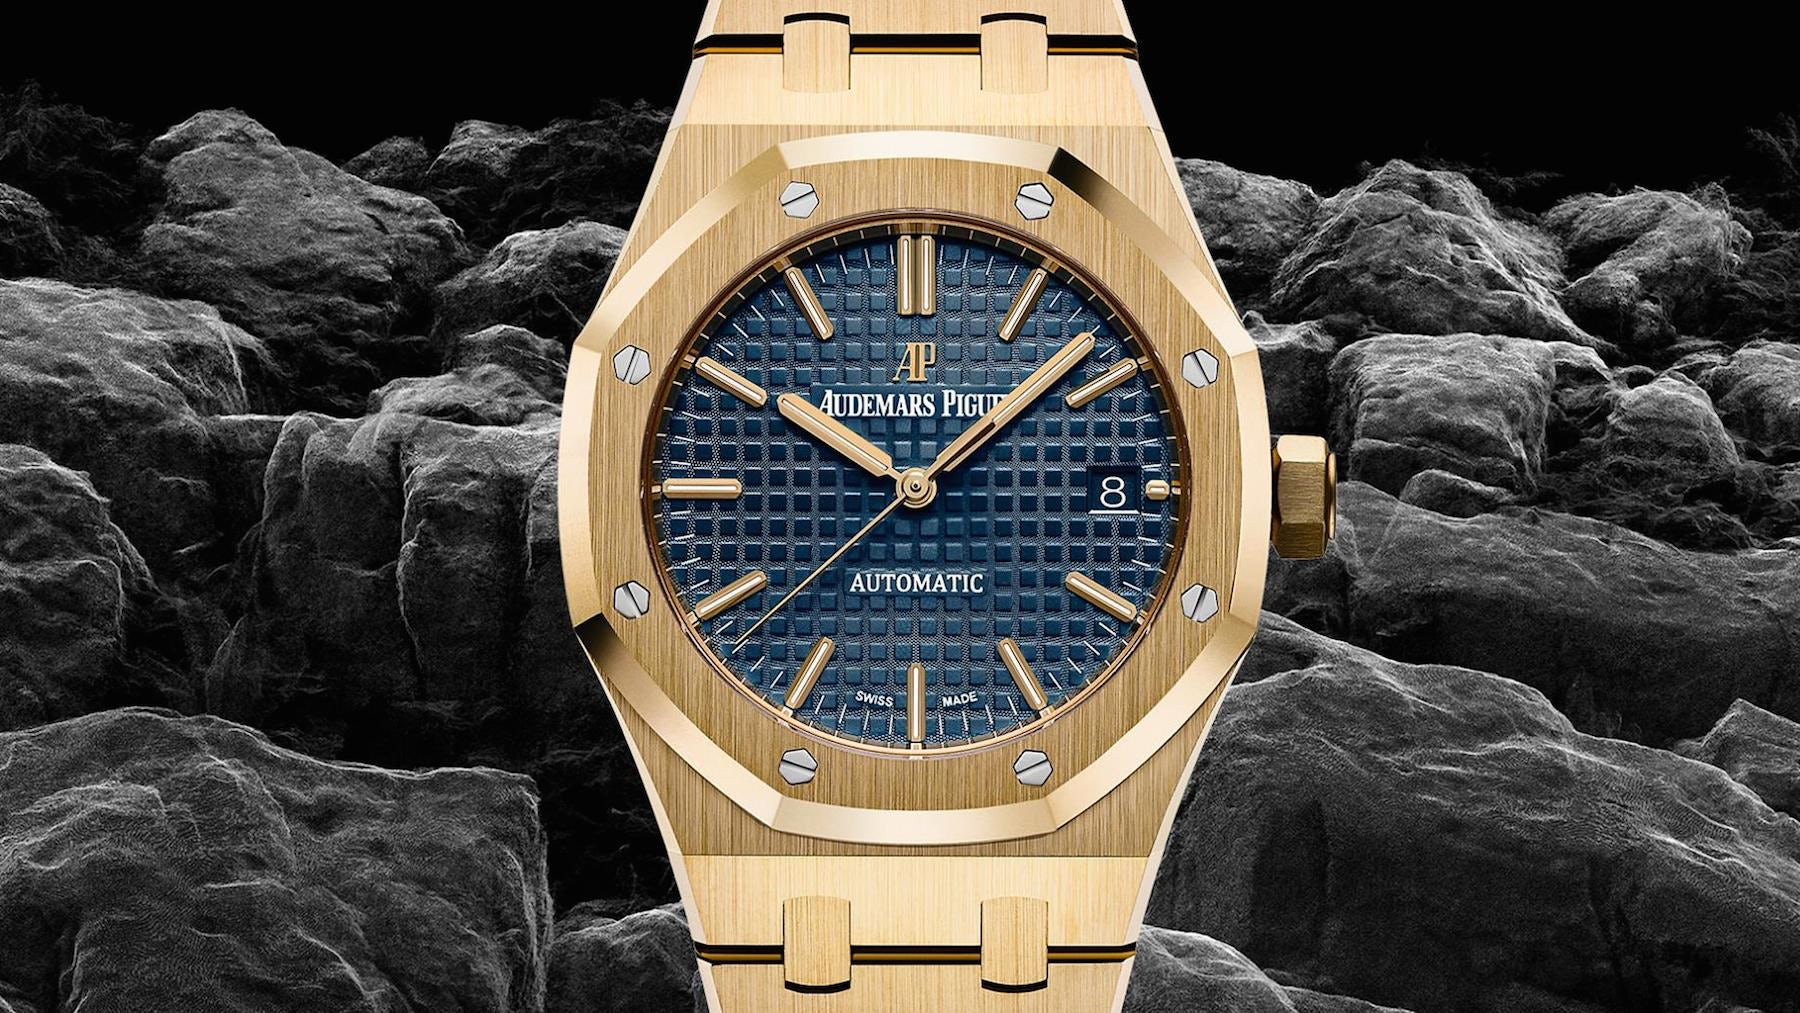 Source: Audemars Piguet